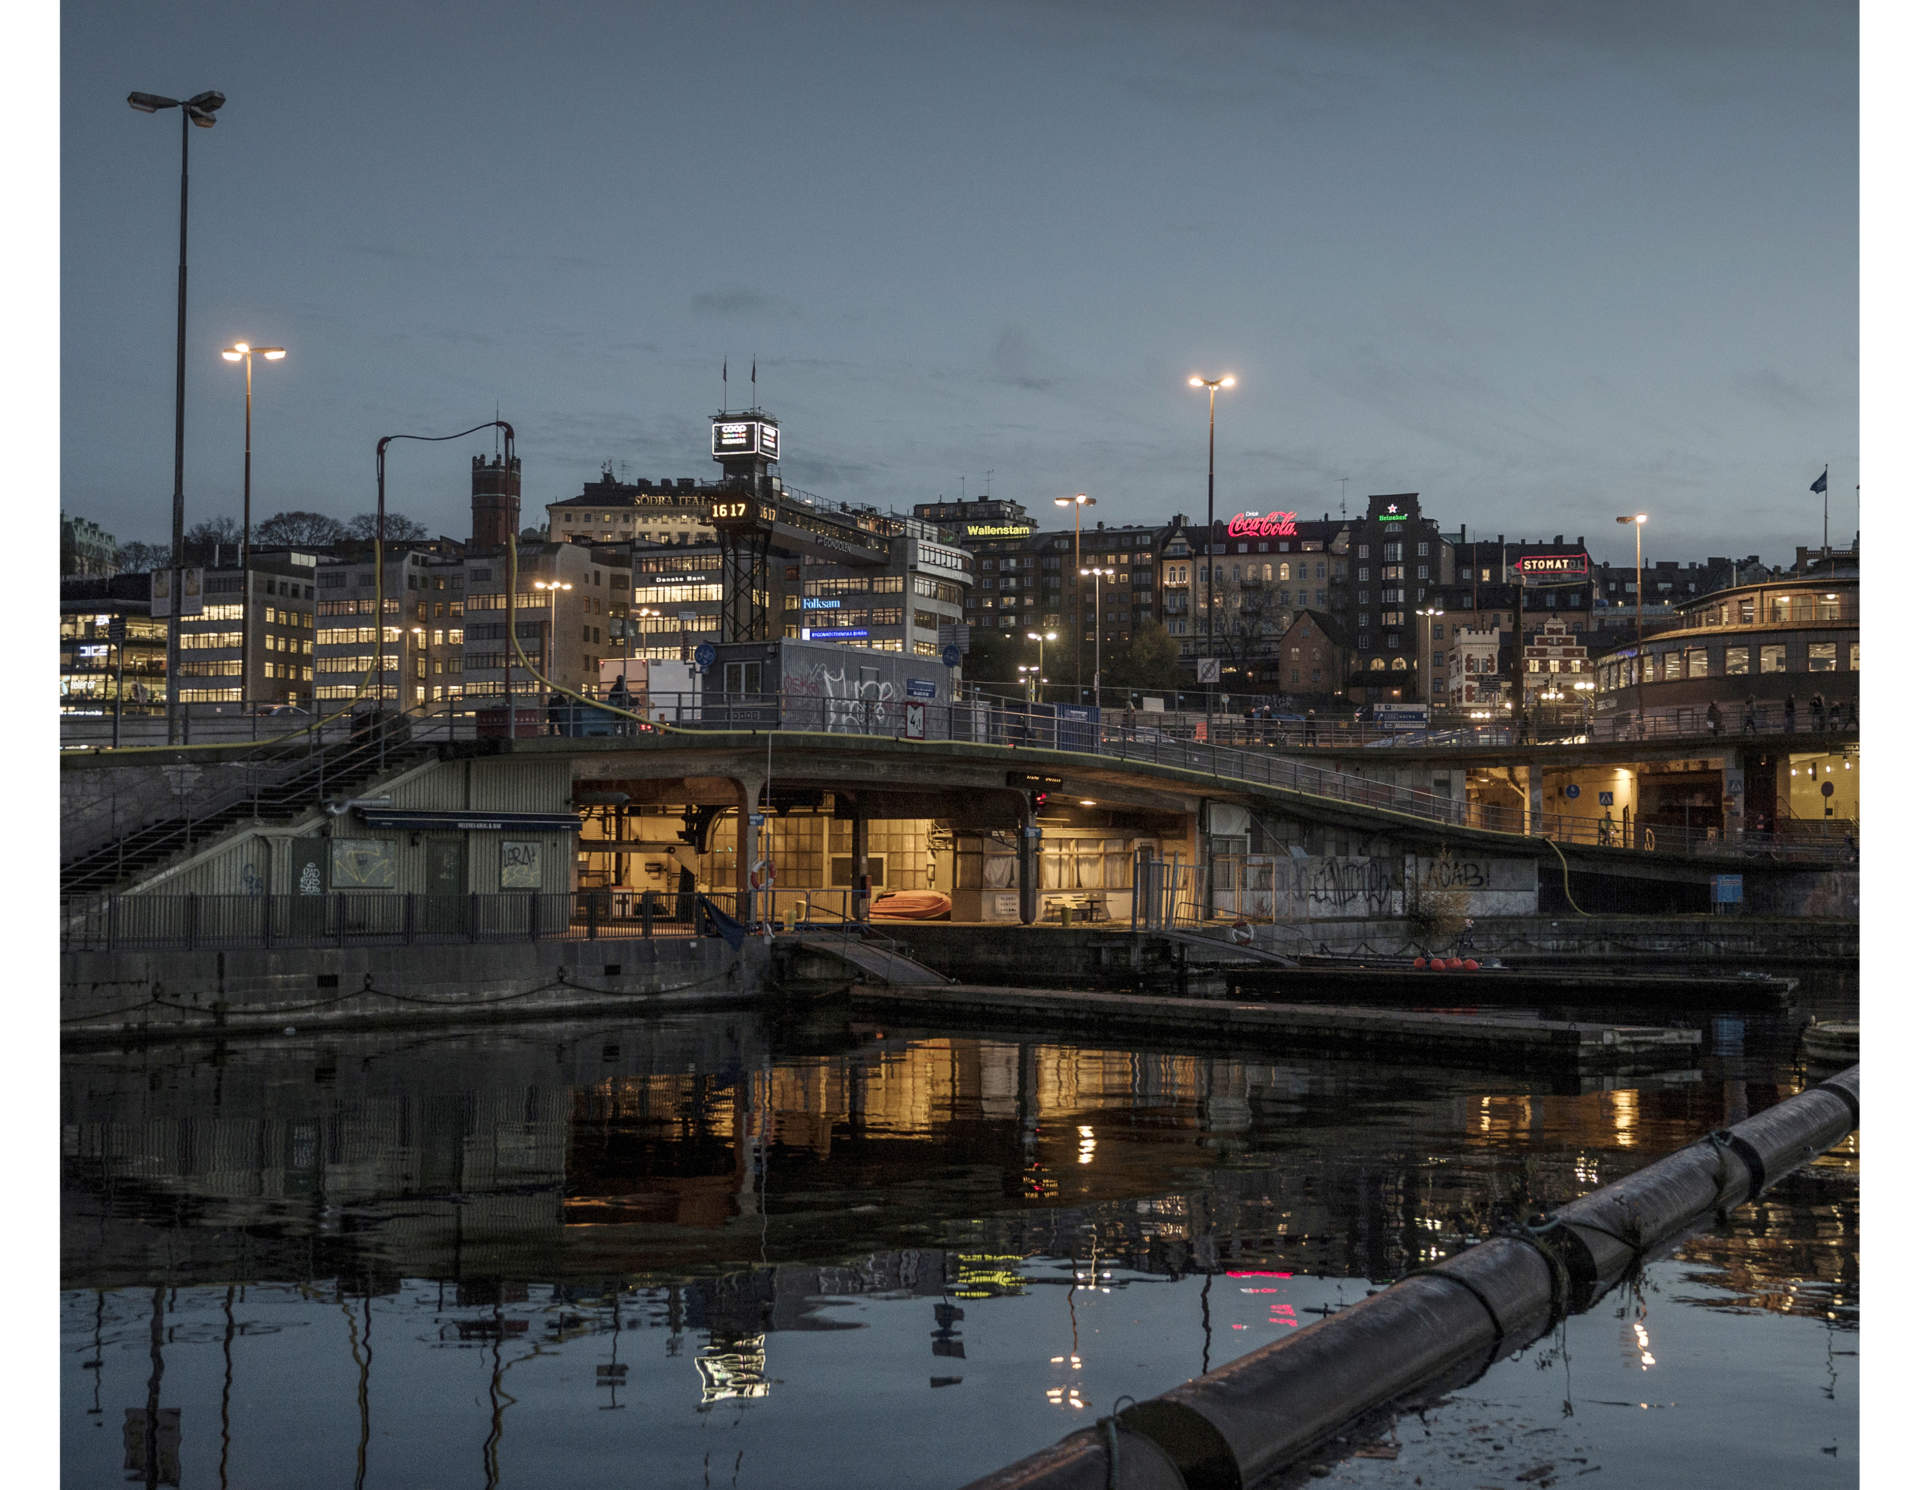 """Slussen"" in central Stockholm. Pekka and Matte spends many nights sleeping under the bridge. For a period they called it their home, before they were forced to leave because of heavy construction in the area"